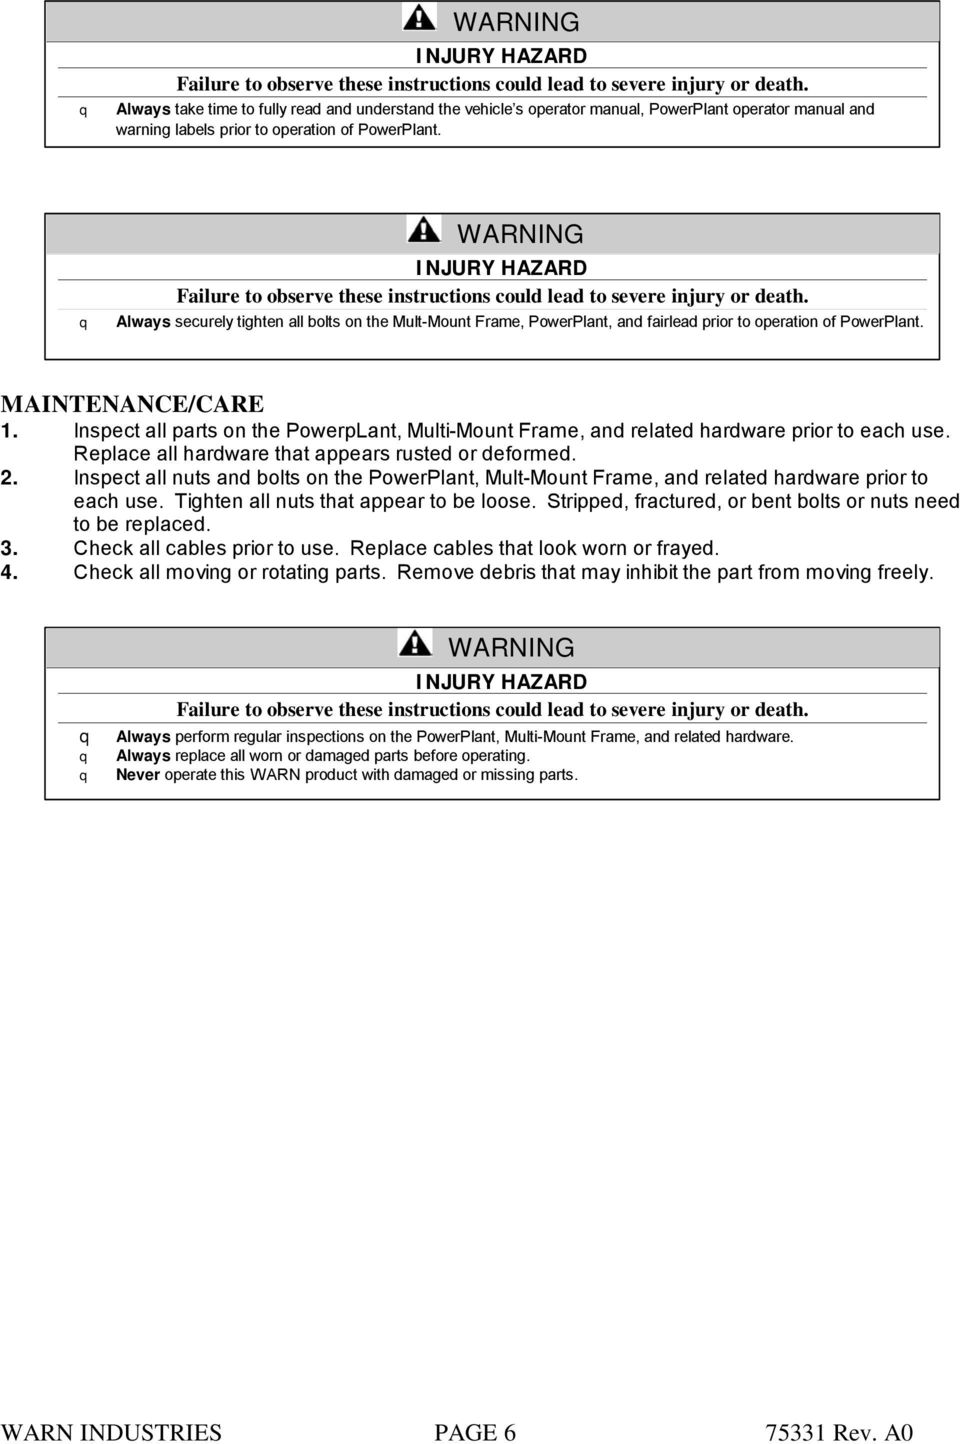 Inspect all parts on the PowerpLant, Multi-Mount Frame, and related hardware prior to each use. Replace all hardware that appears rusted or deformed. 2.